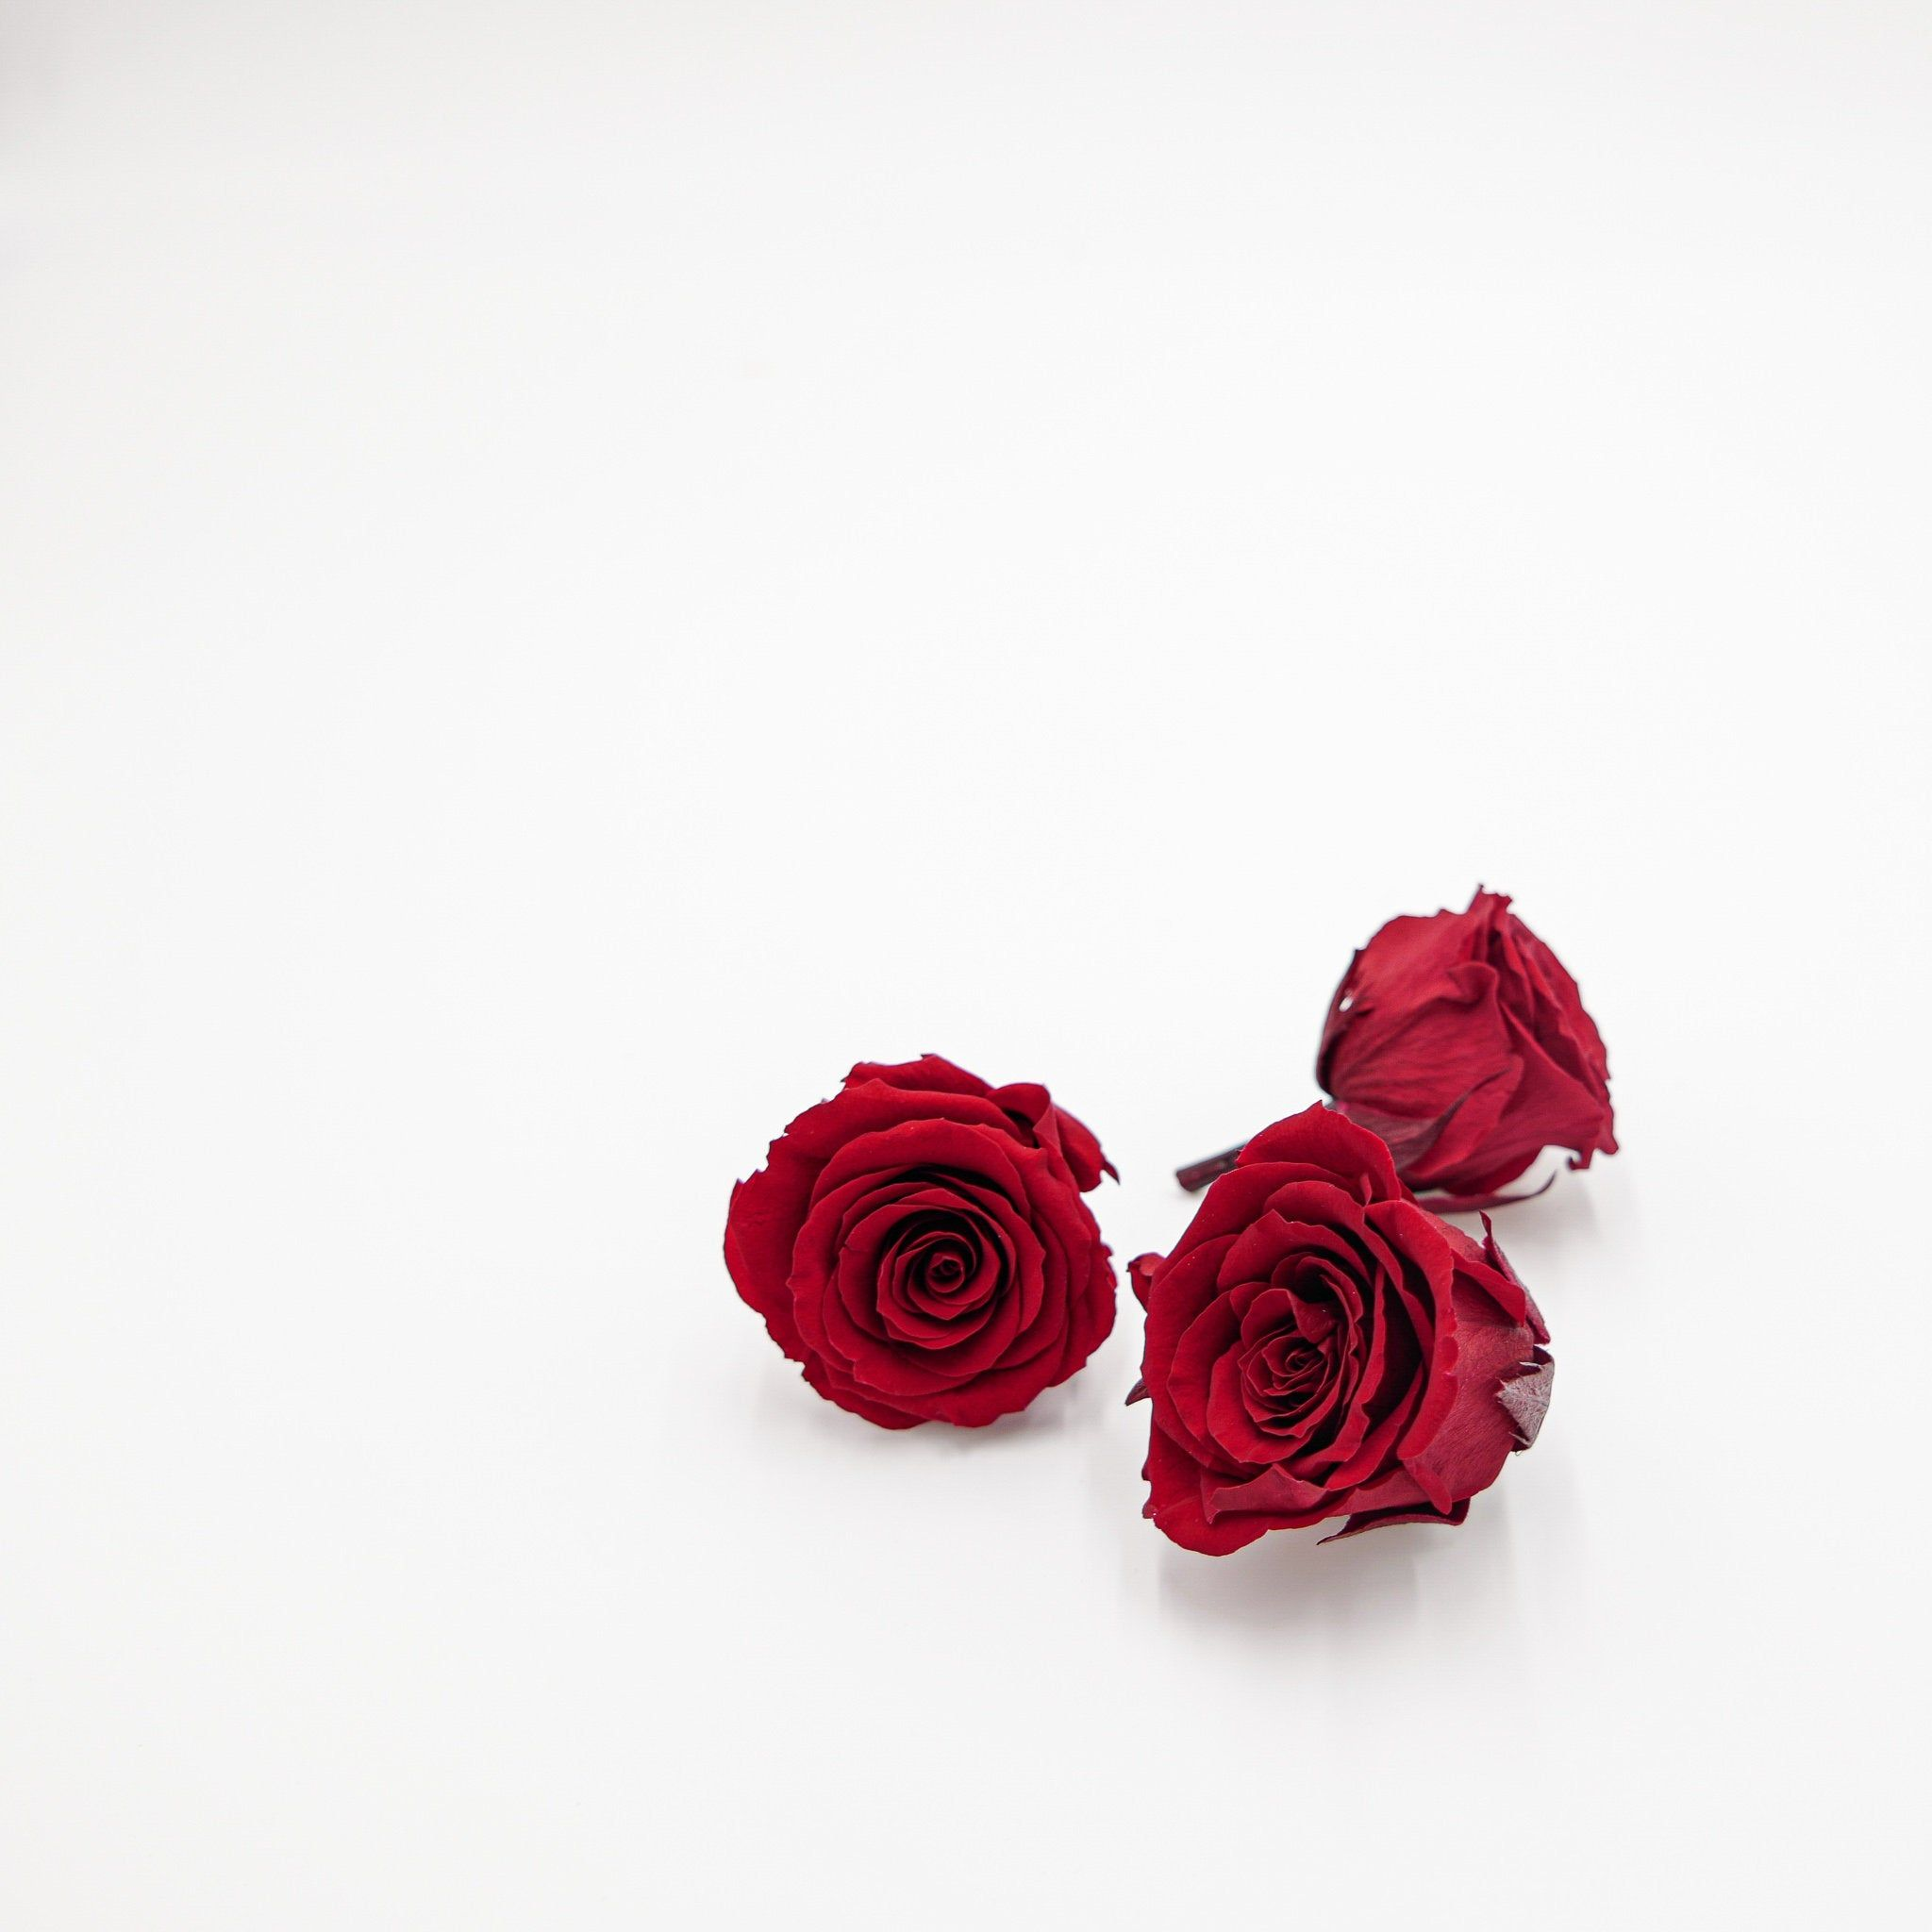 Preserved Flower Rose Kanon M Wine Red Etsy How To Preserve Flowers Red Roses Wallpaper Wallpaper Nature Flowers